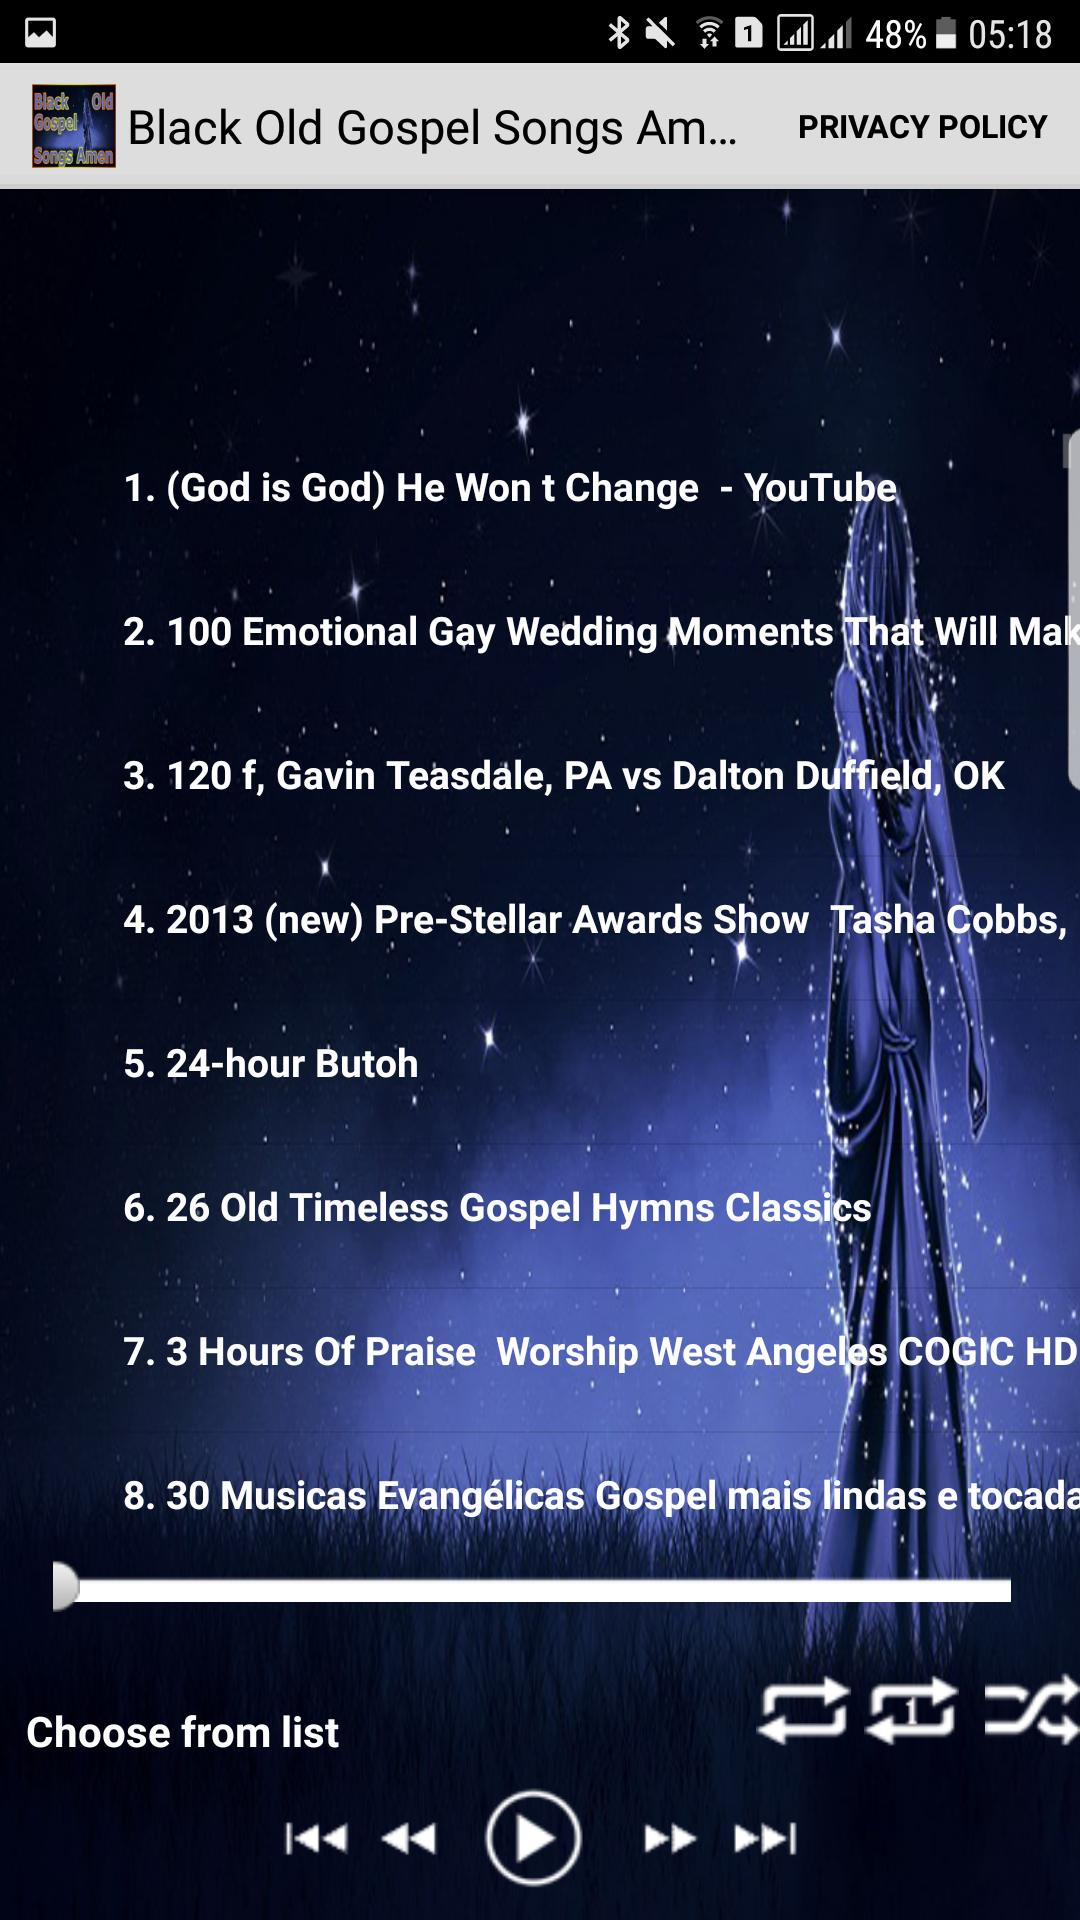 Black Old Gospel Songs Amen for Android - APK Download